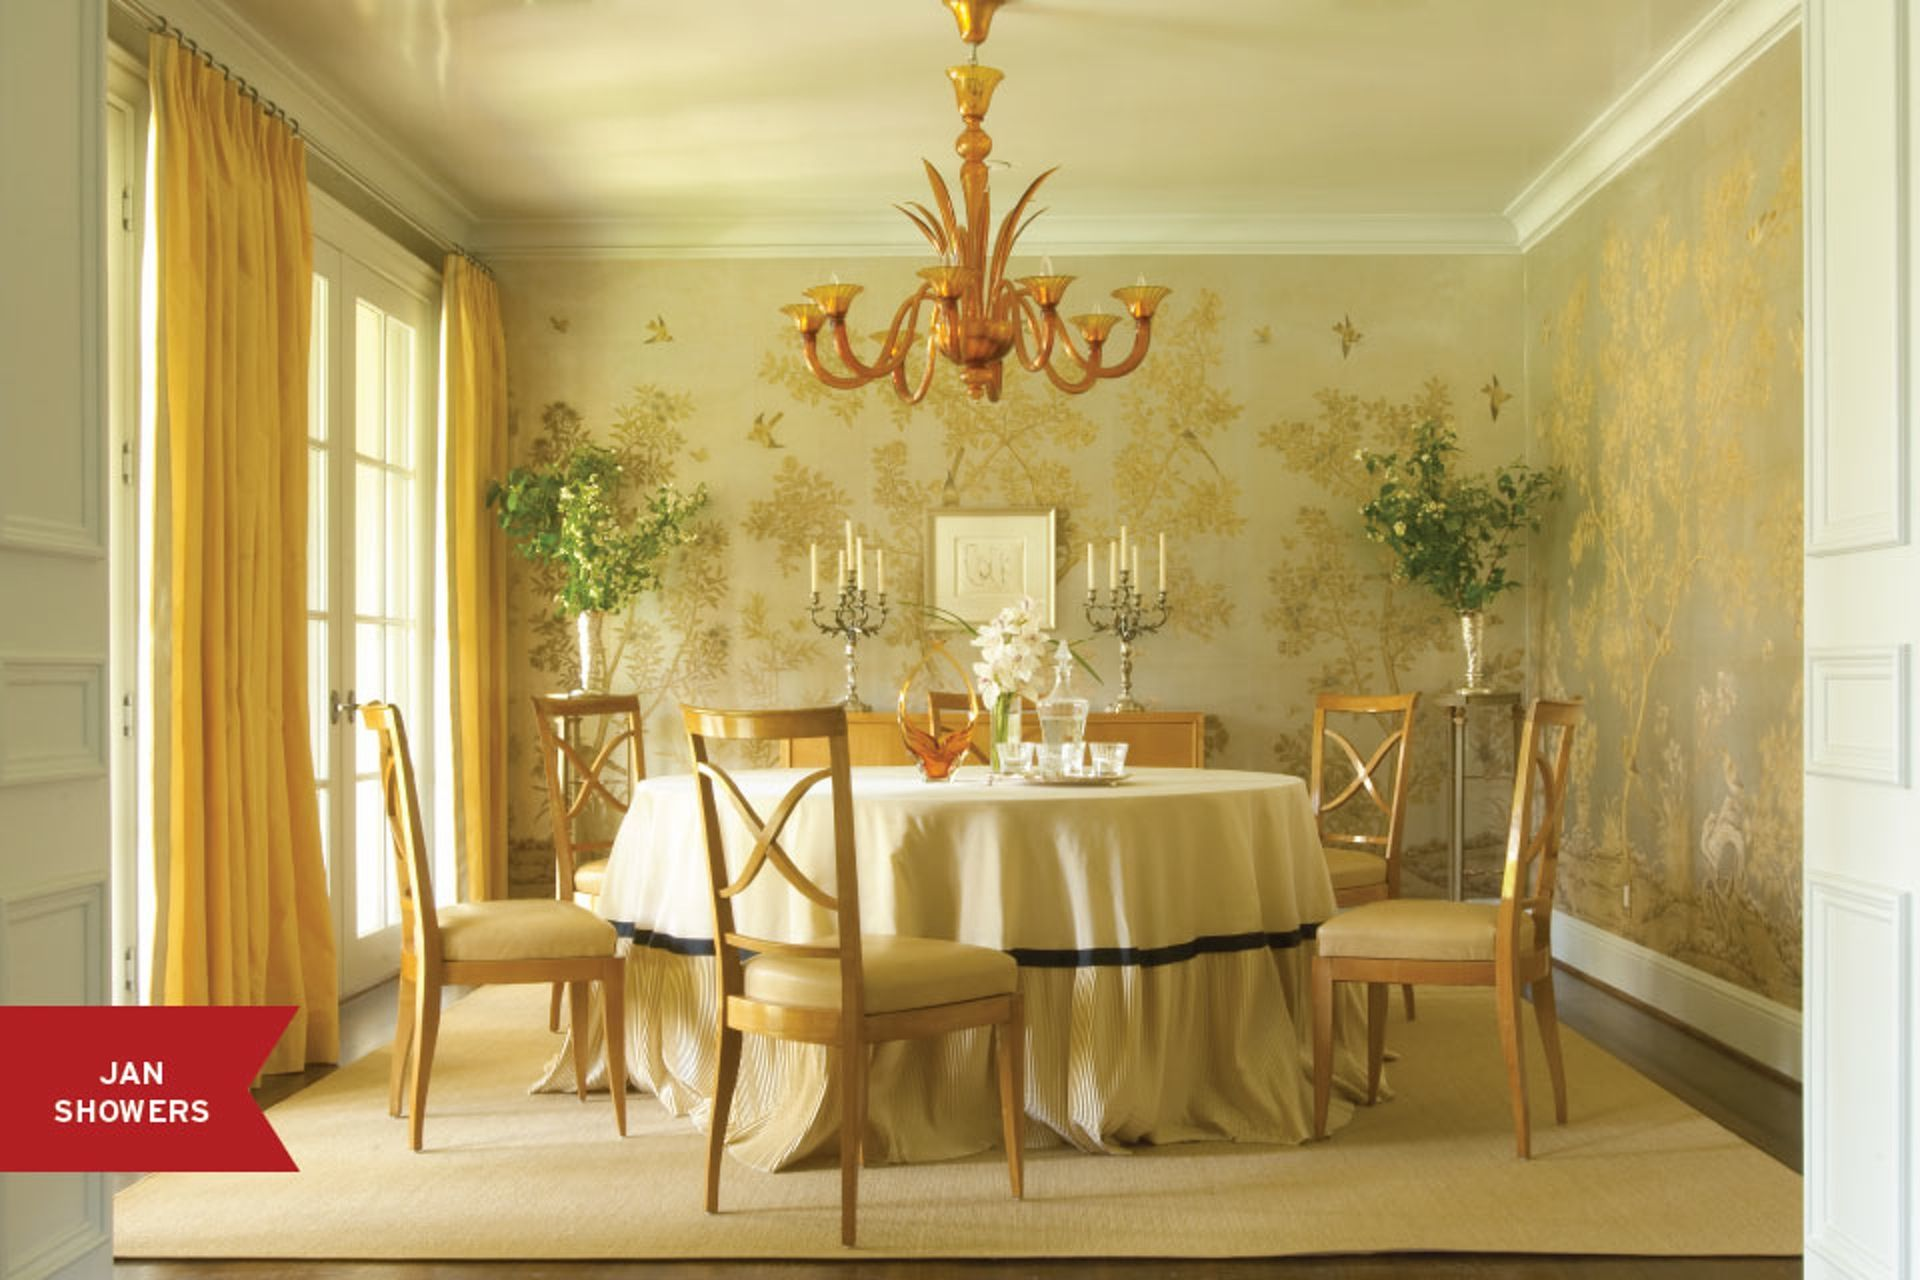 10 Dining Rooms with Creative Wall Designs | Creative walls, Showers ...